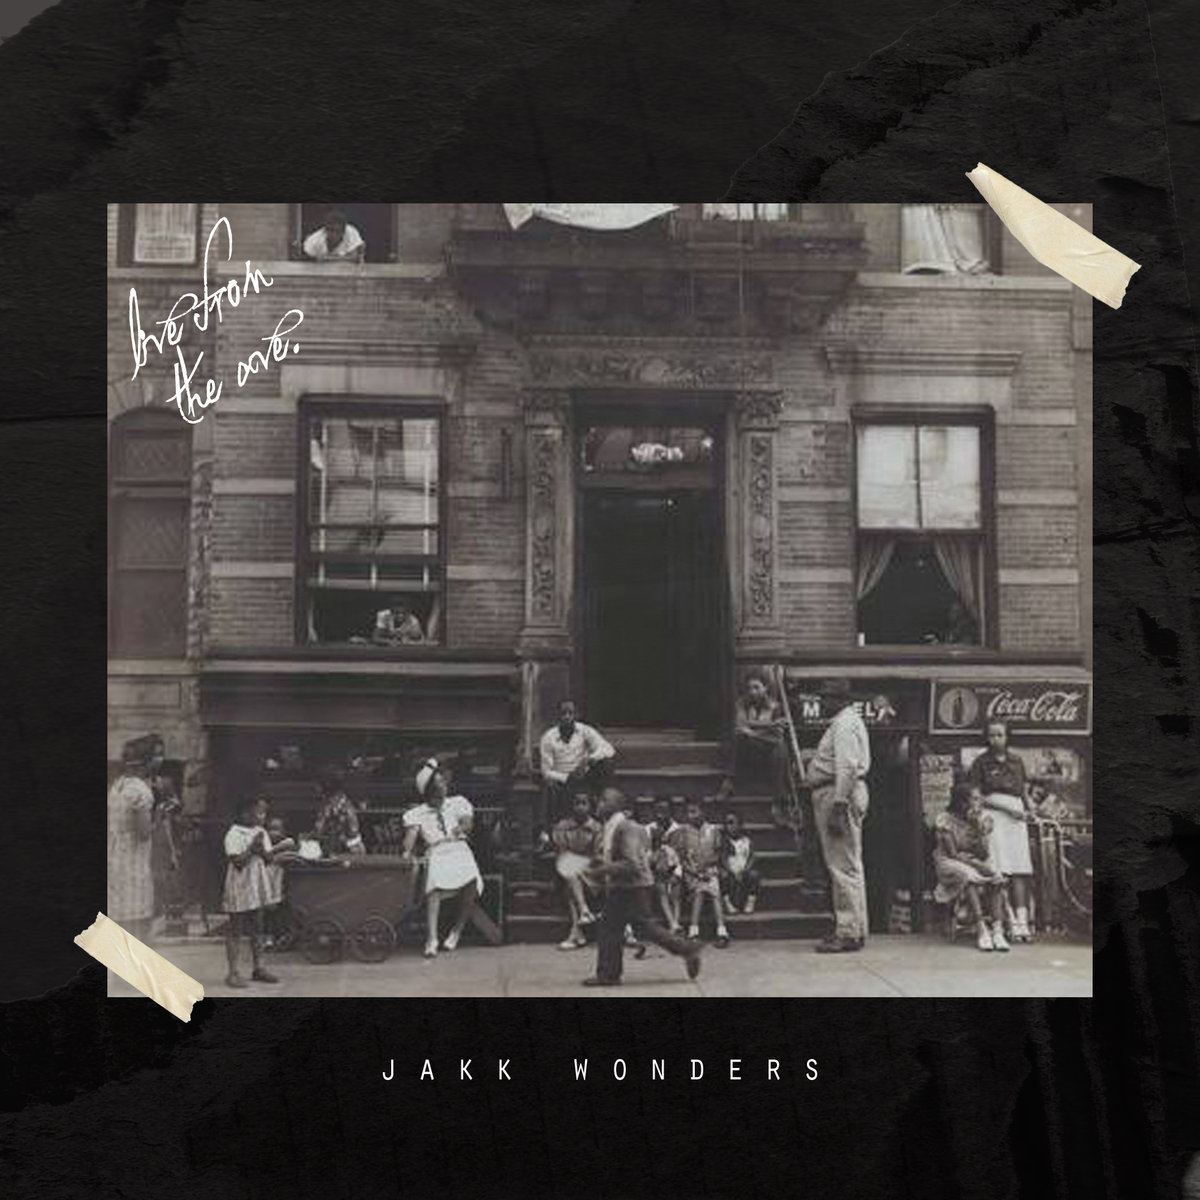 Jakk Wonders - Live From The Avenue (Album)